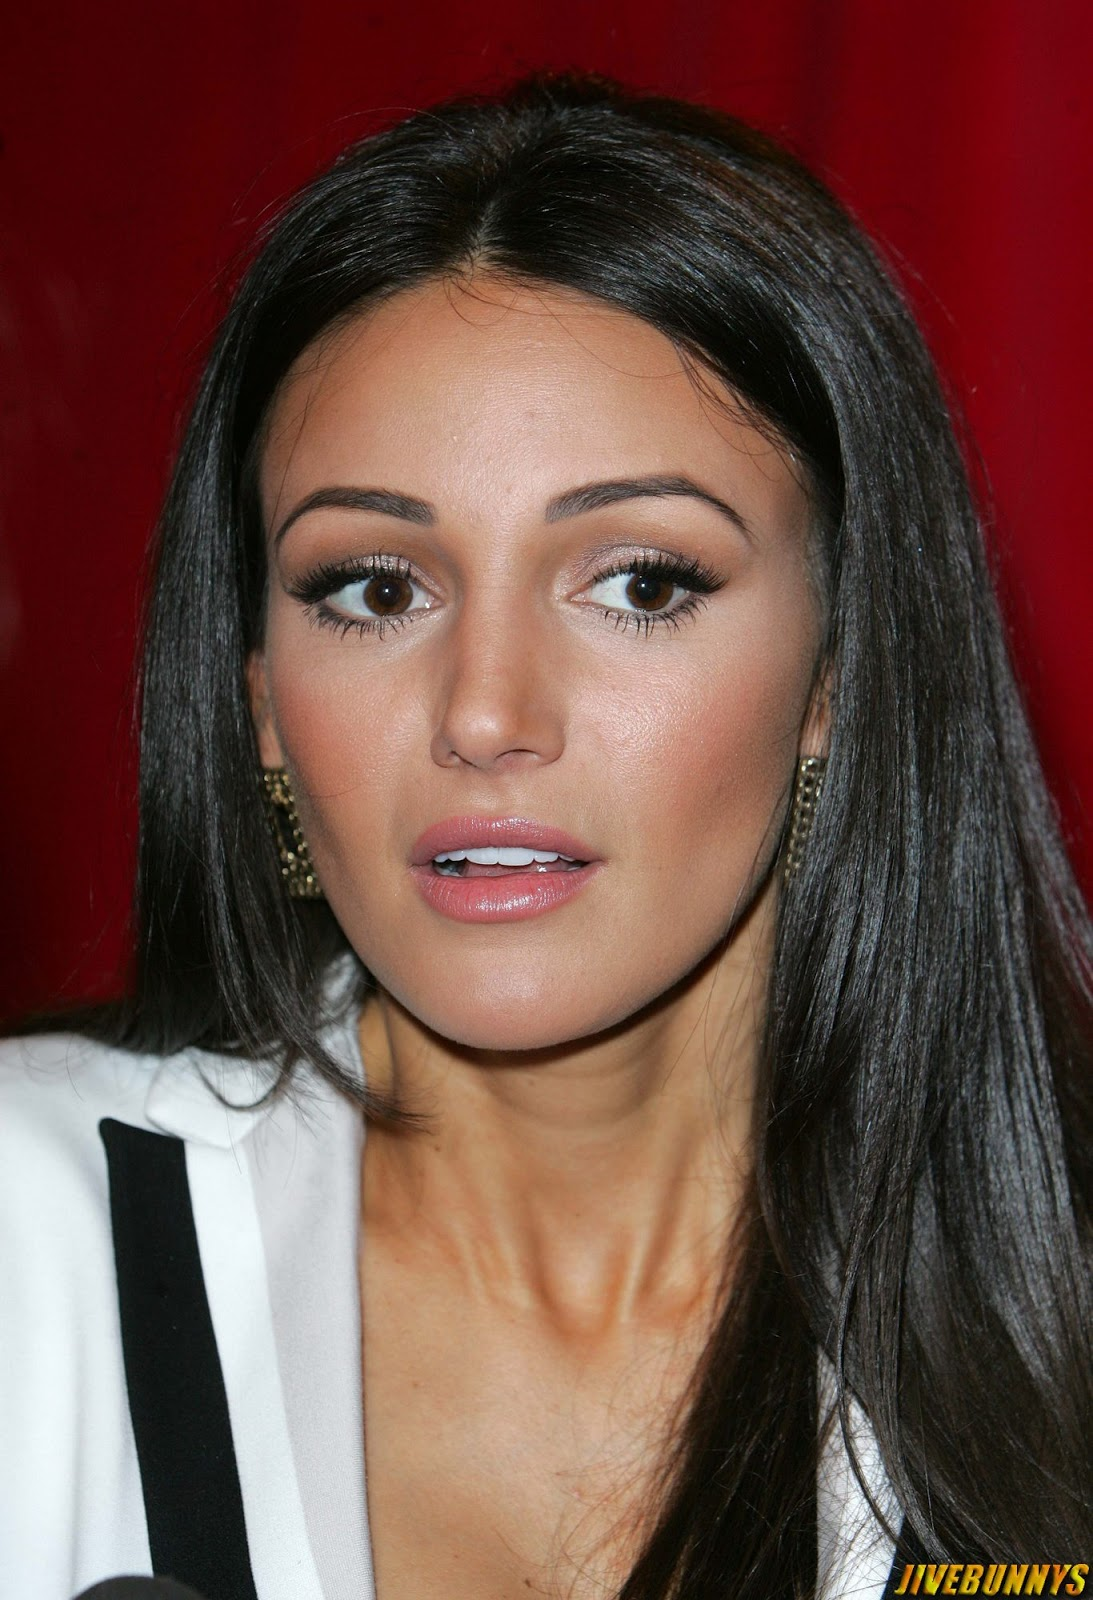 Michelle Keegan Actress Photos and Images Gallery 3